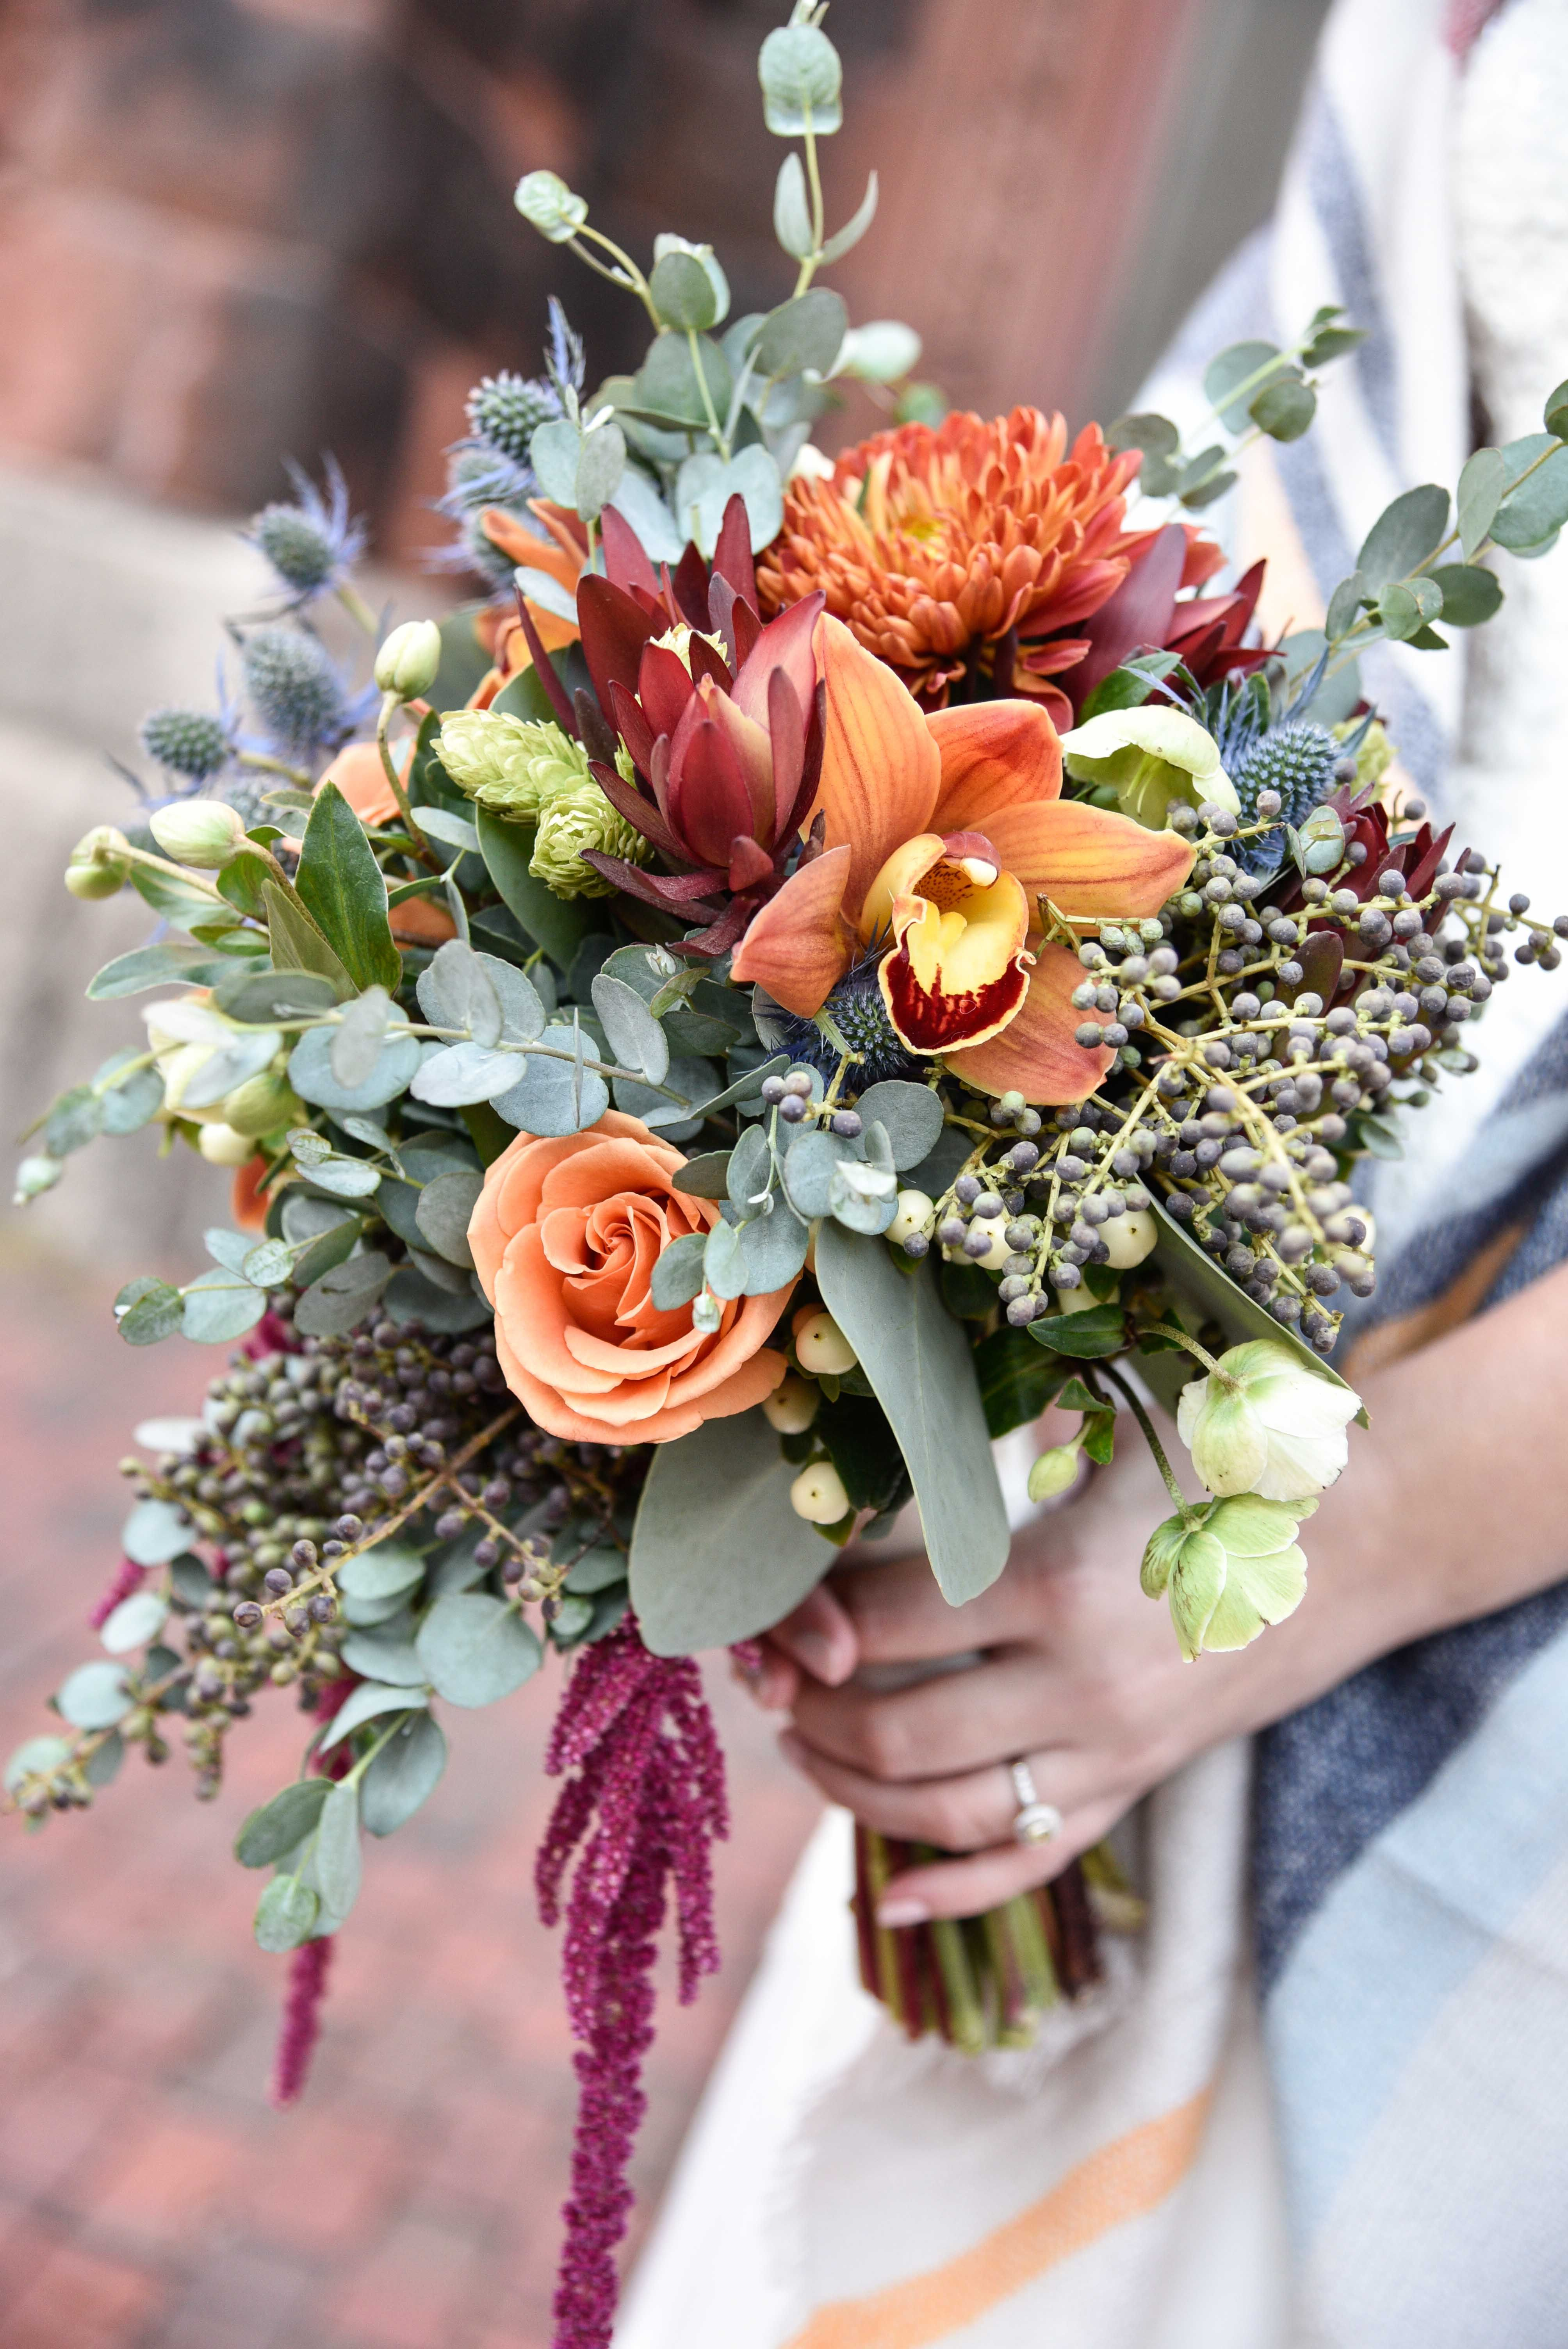 Warm Fall Wedding In Portland Maine Featured In Old Port Magazine Skillins Flora Maine Wedding Flowers Fall Wedding Flowers Orange Maine Wedding Photography